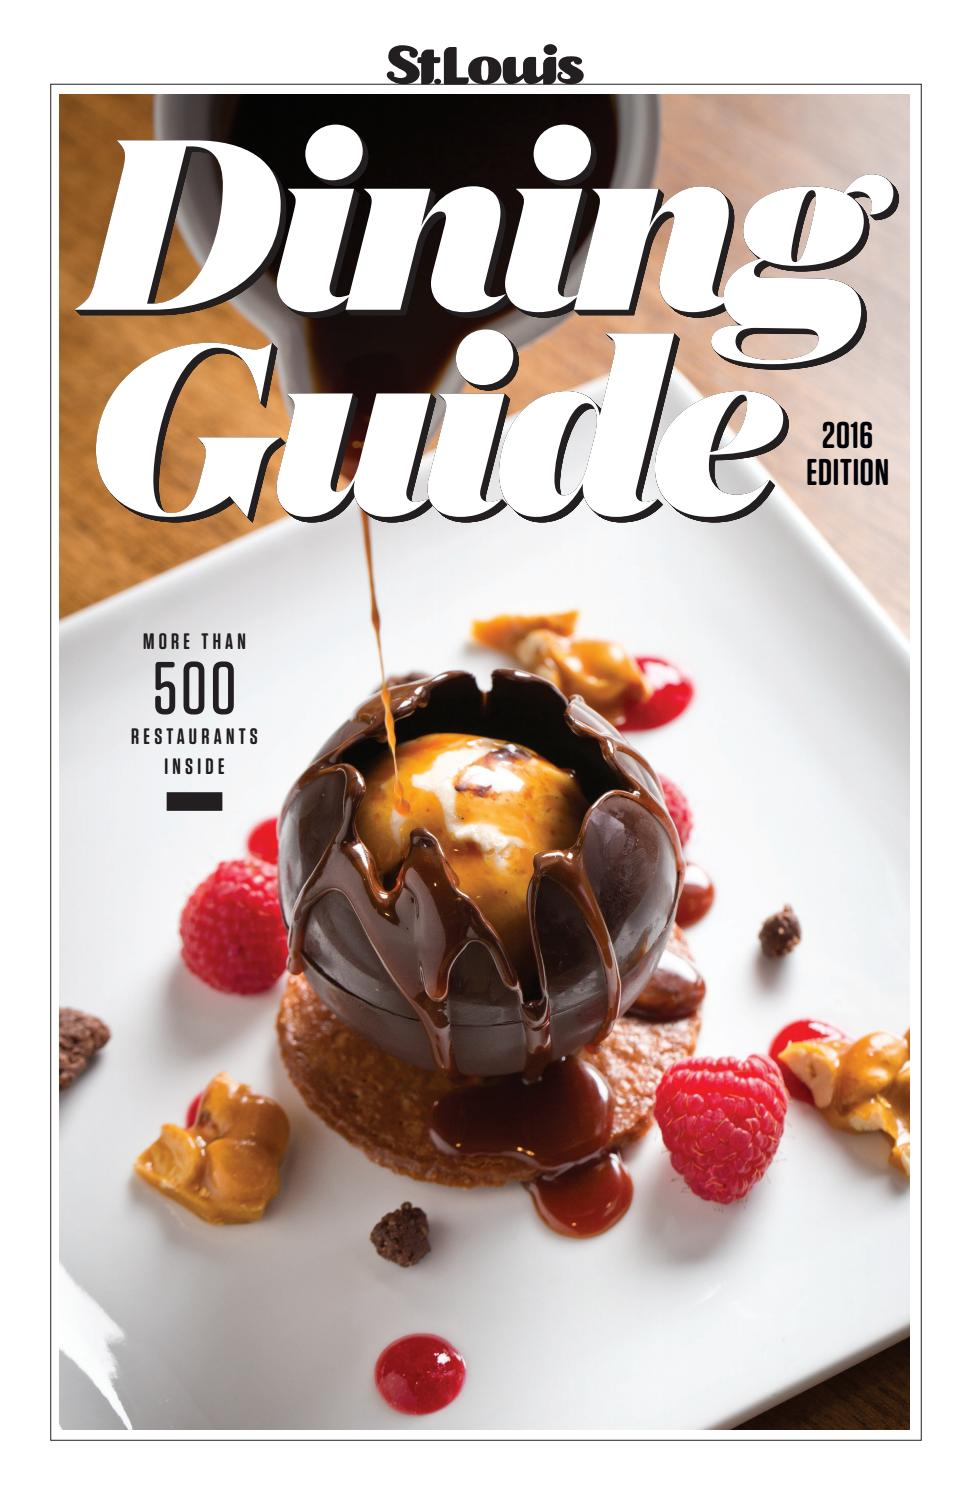 St. Louis Dining Guide: 2016 Edition by St. Louis Magazine - issuu